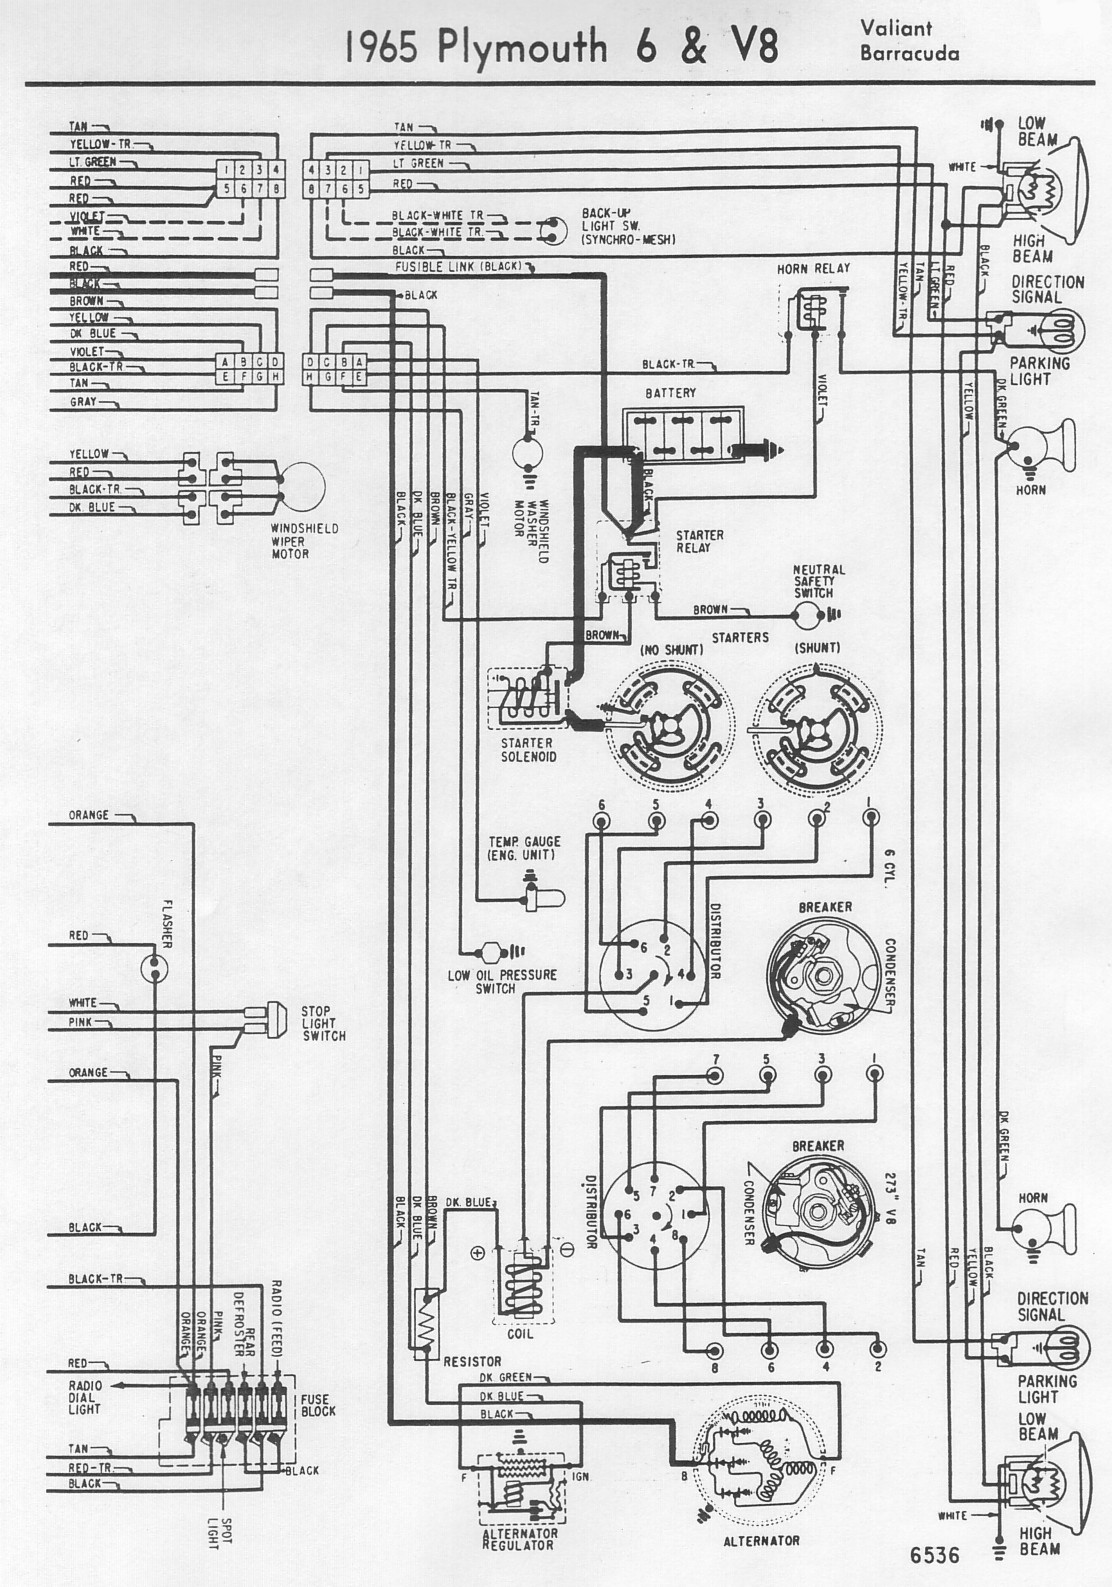 1969 Camaro Temp Gauge Wiring Diagram Guide And Troubleshooting Of Vdo Temperature Ignition Electric Water